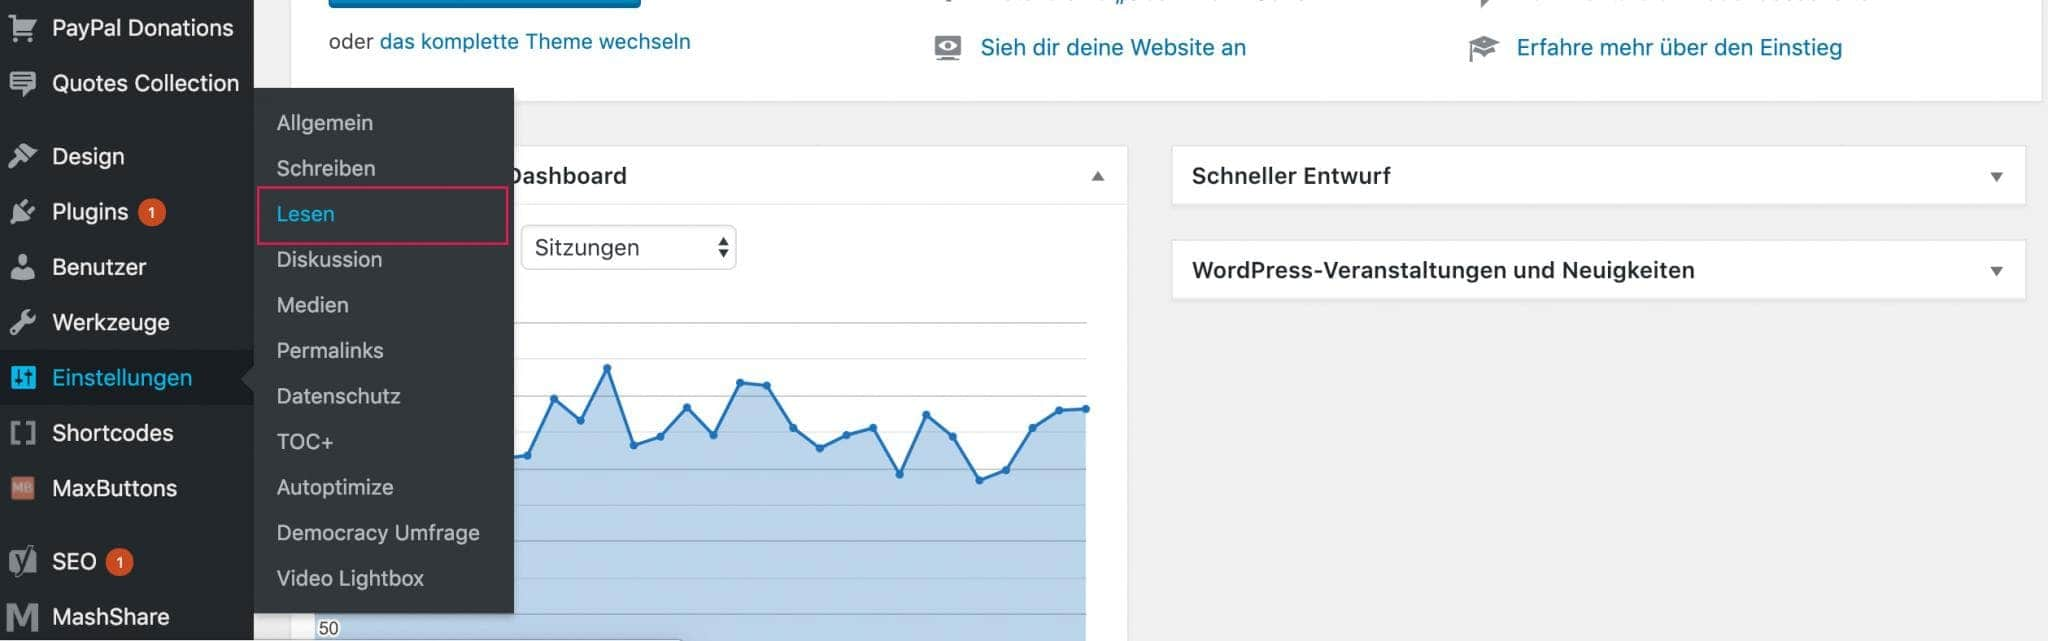 wordpress-startseite-festlegen